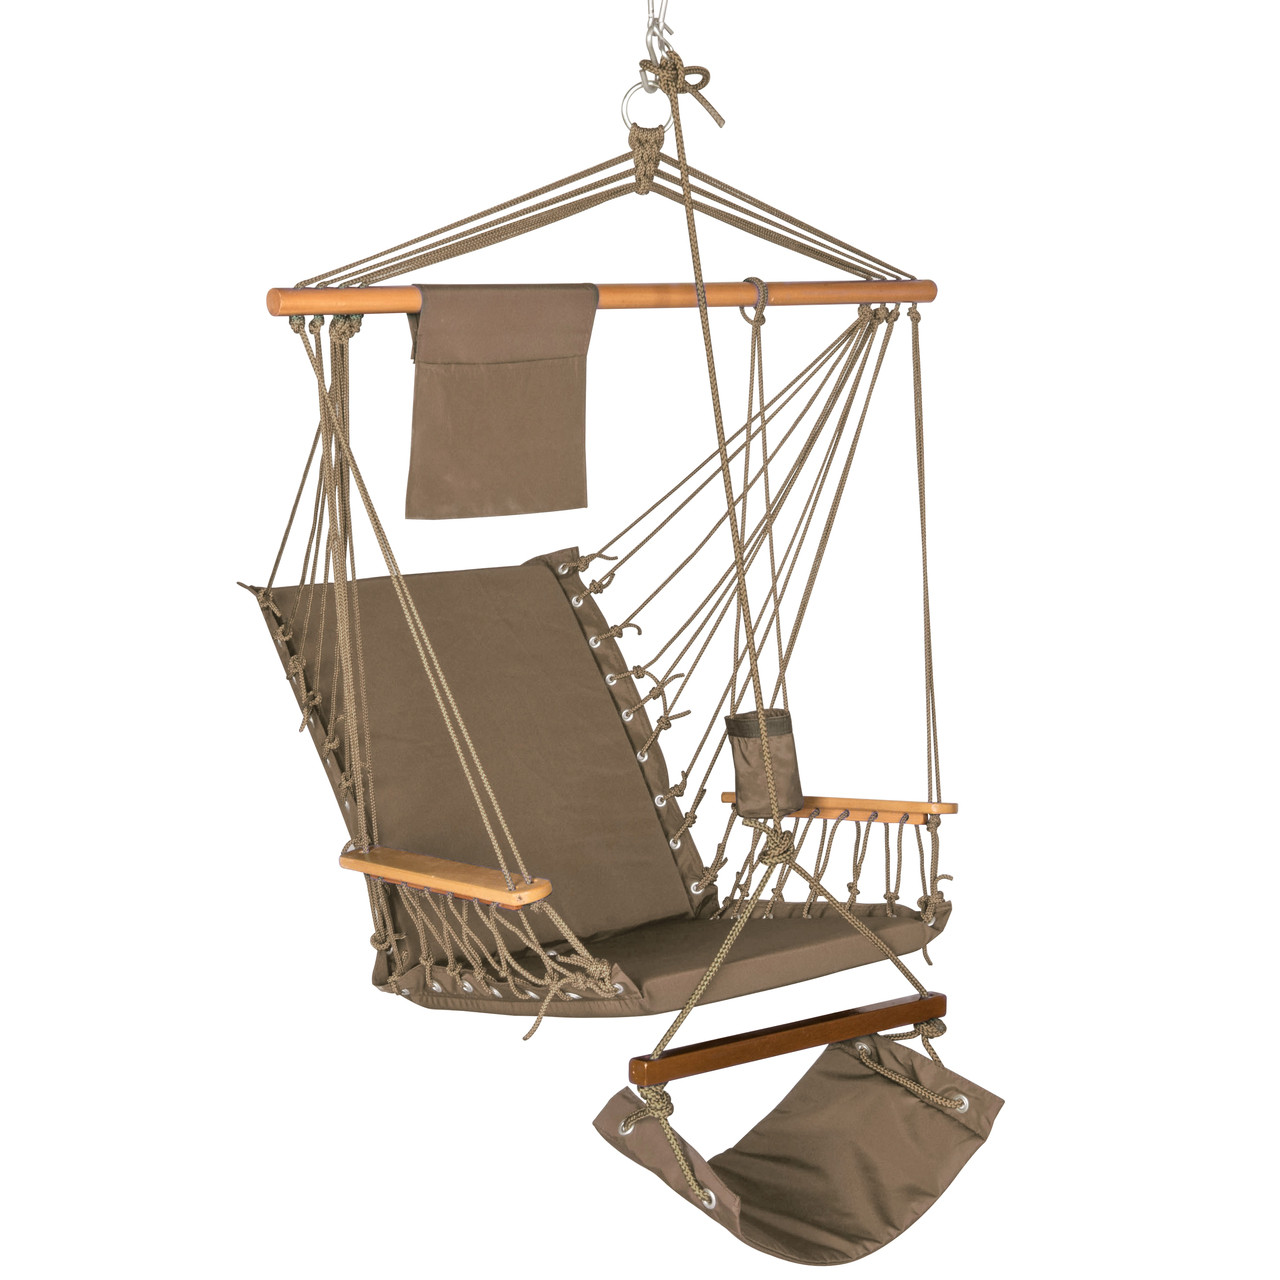 Lazy Daze Hammocks Hanging Rope Chair Cotton Padded Swing Chair